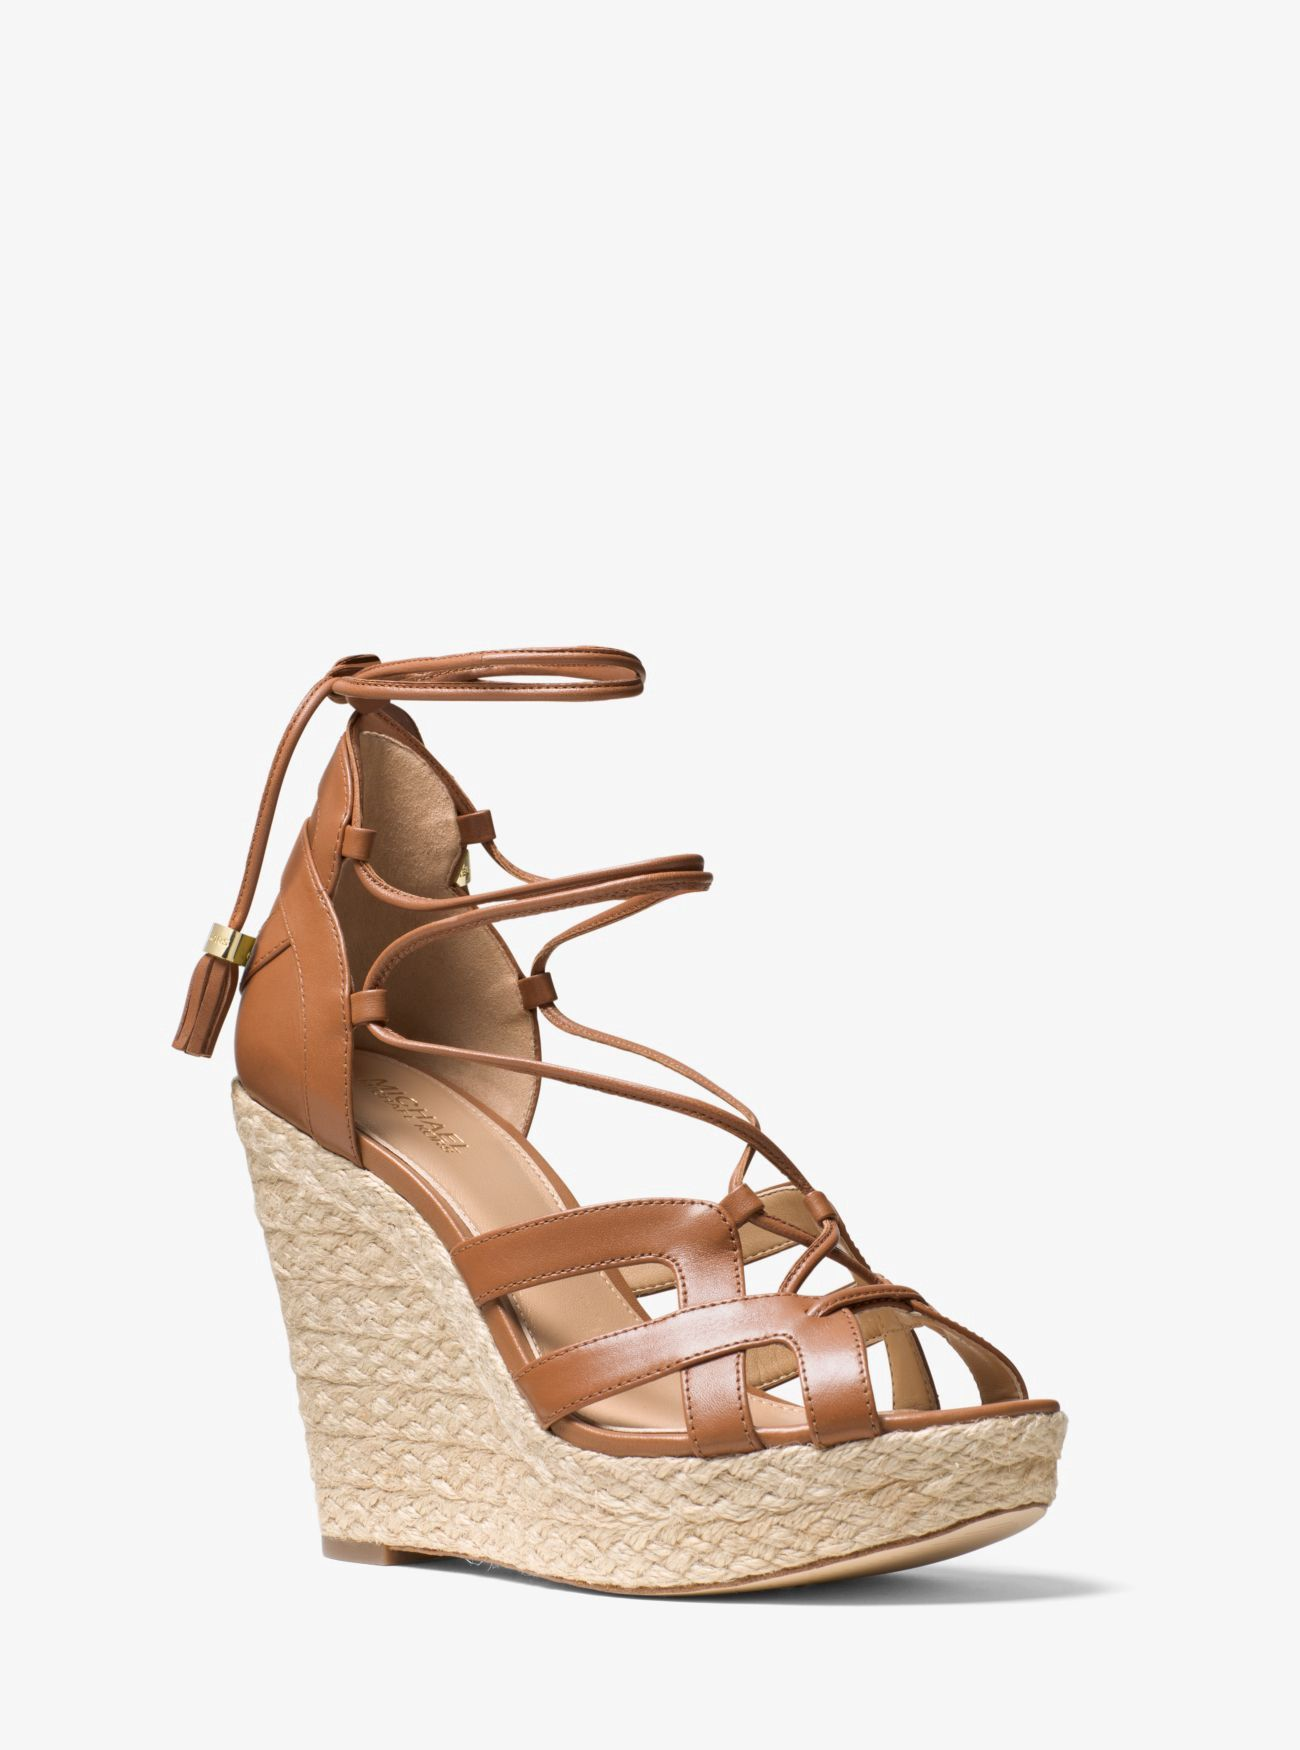 4598daa4c7b MICHAEL KORS Mirabel Leather Lace-Up Wedge.  michaelkors  shoes  all ...